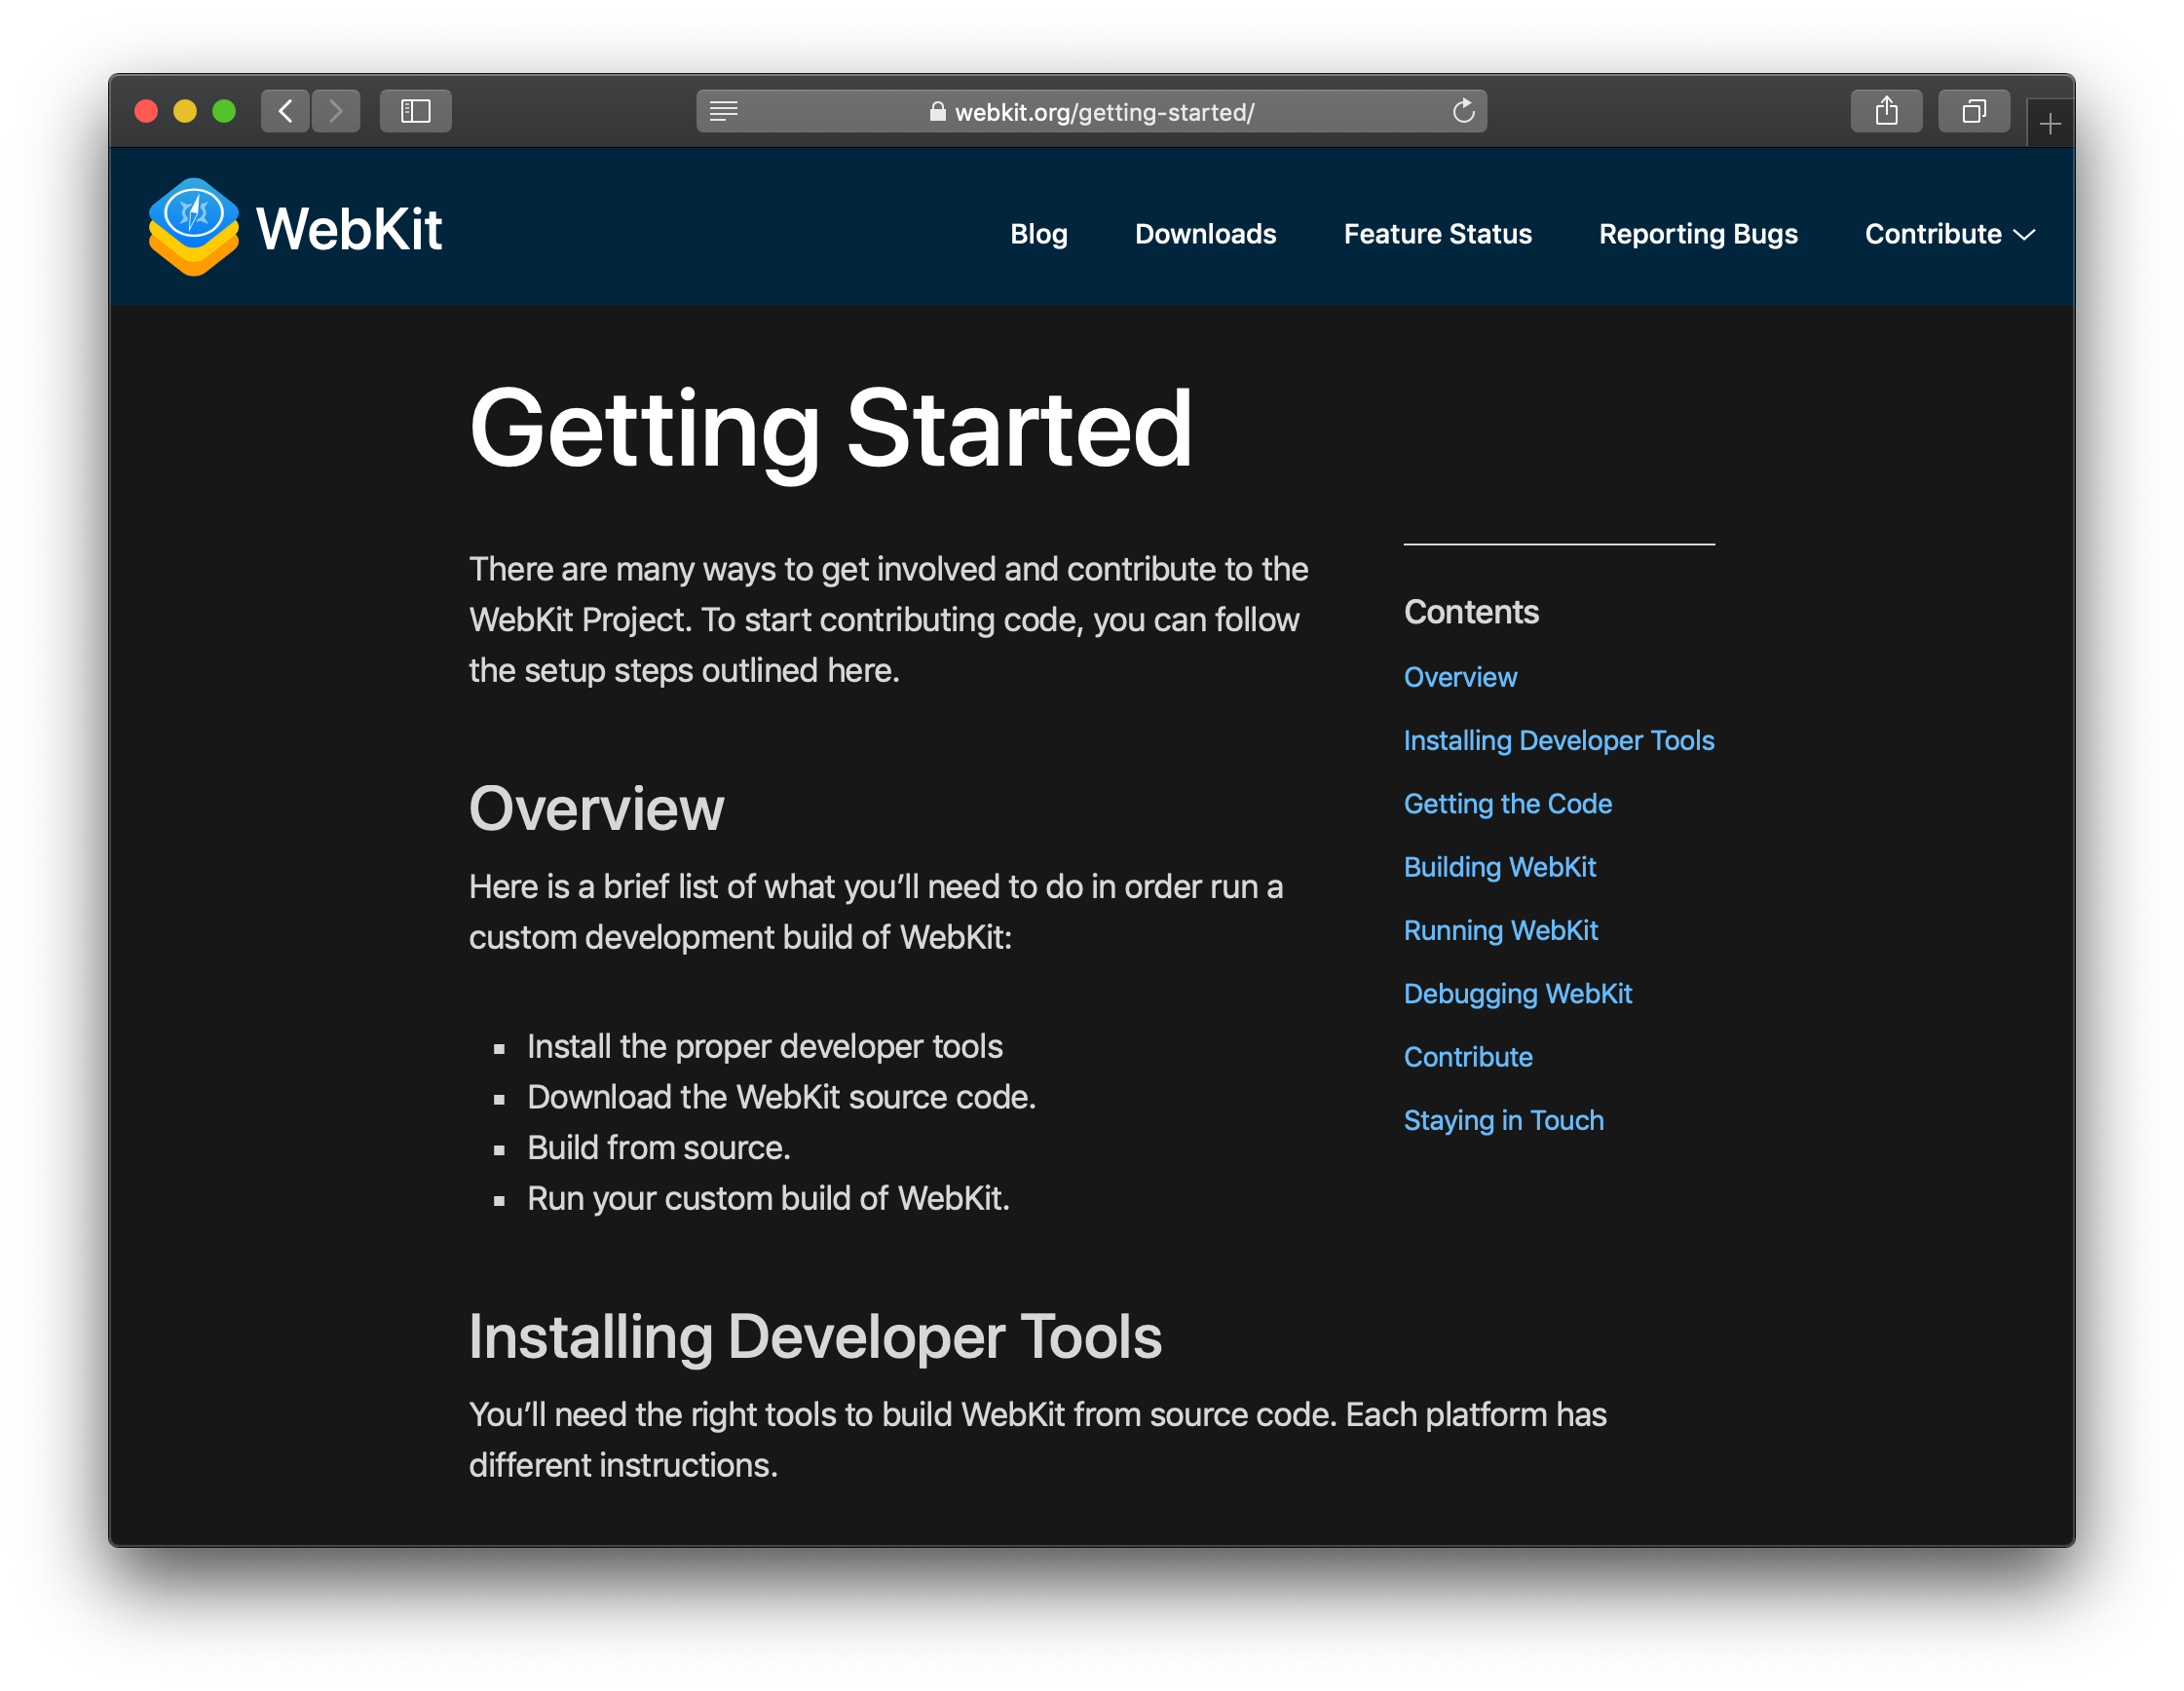 WebKit.org Getting Started page shown in dark mode